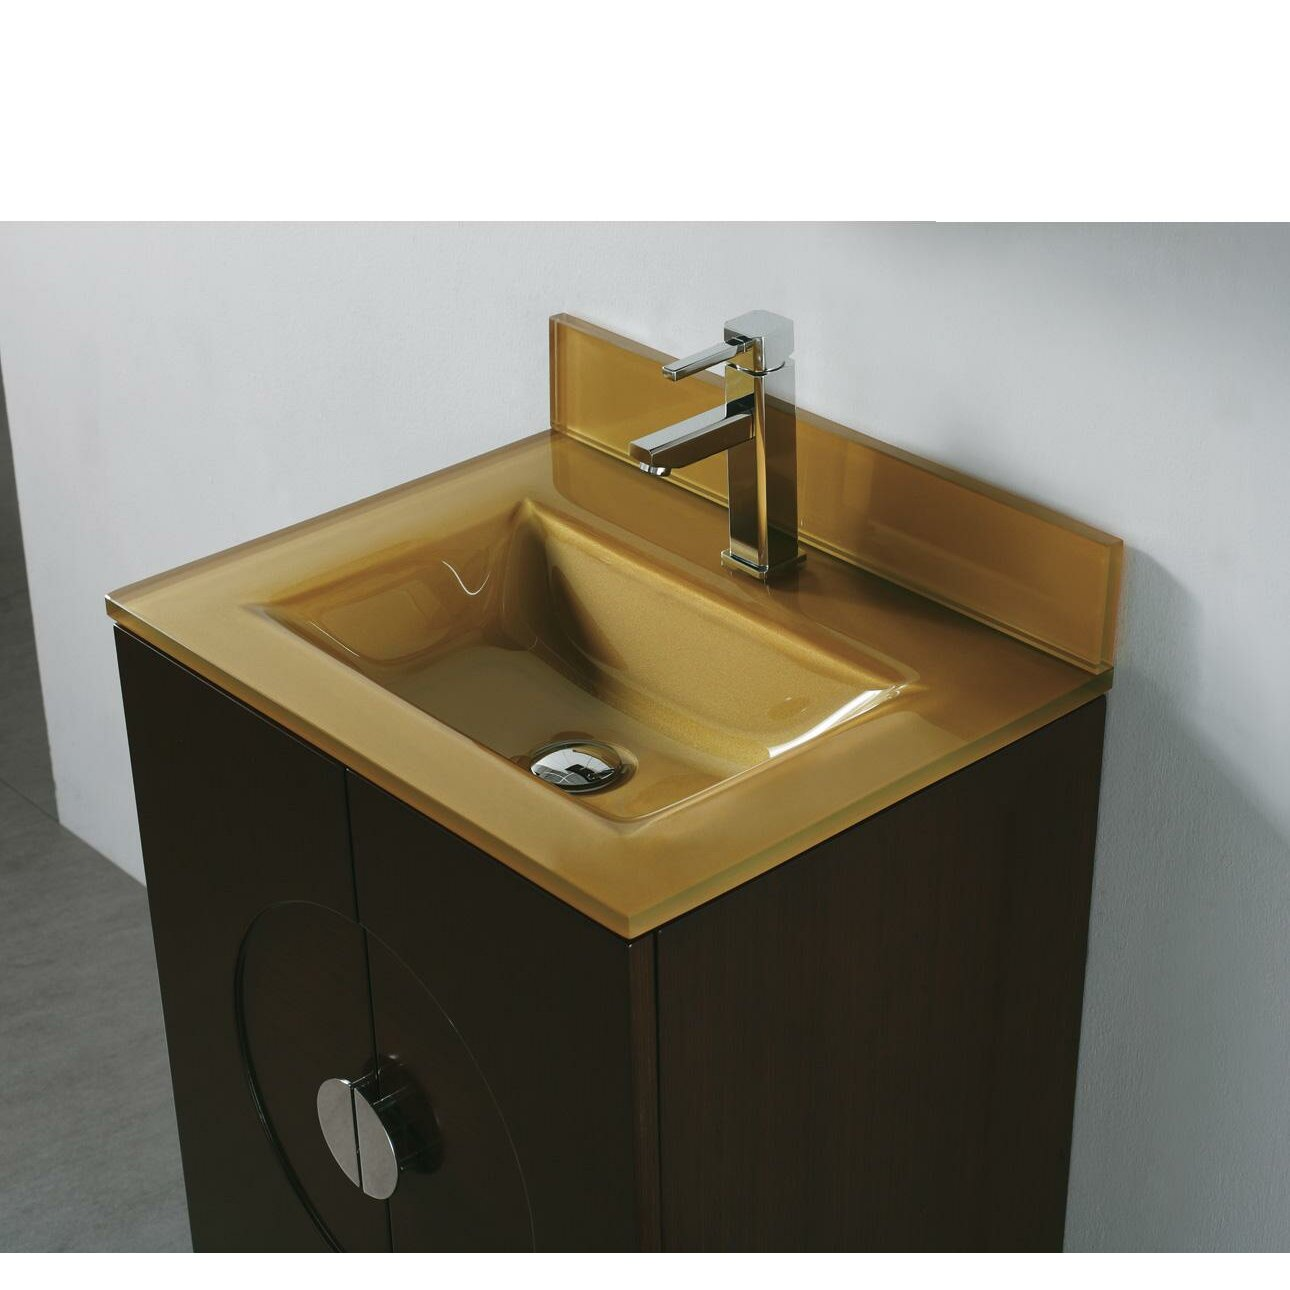 Madeli Tempered Glass Countertop Bathroom Sink & Reviews Wayfair